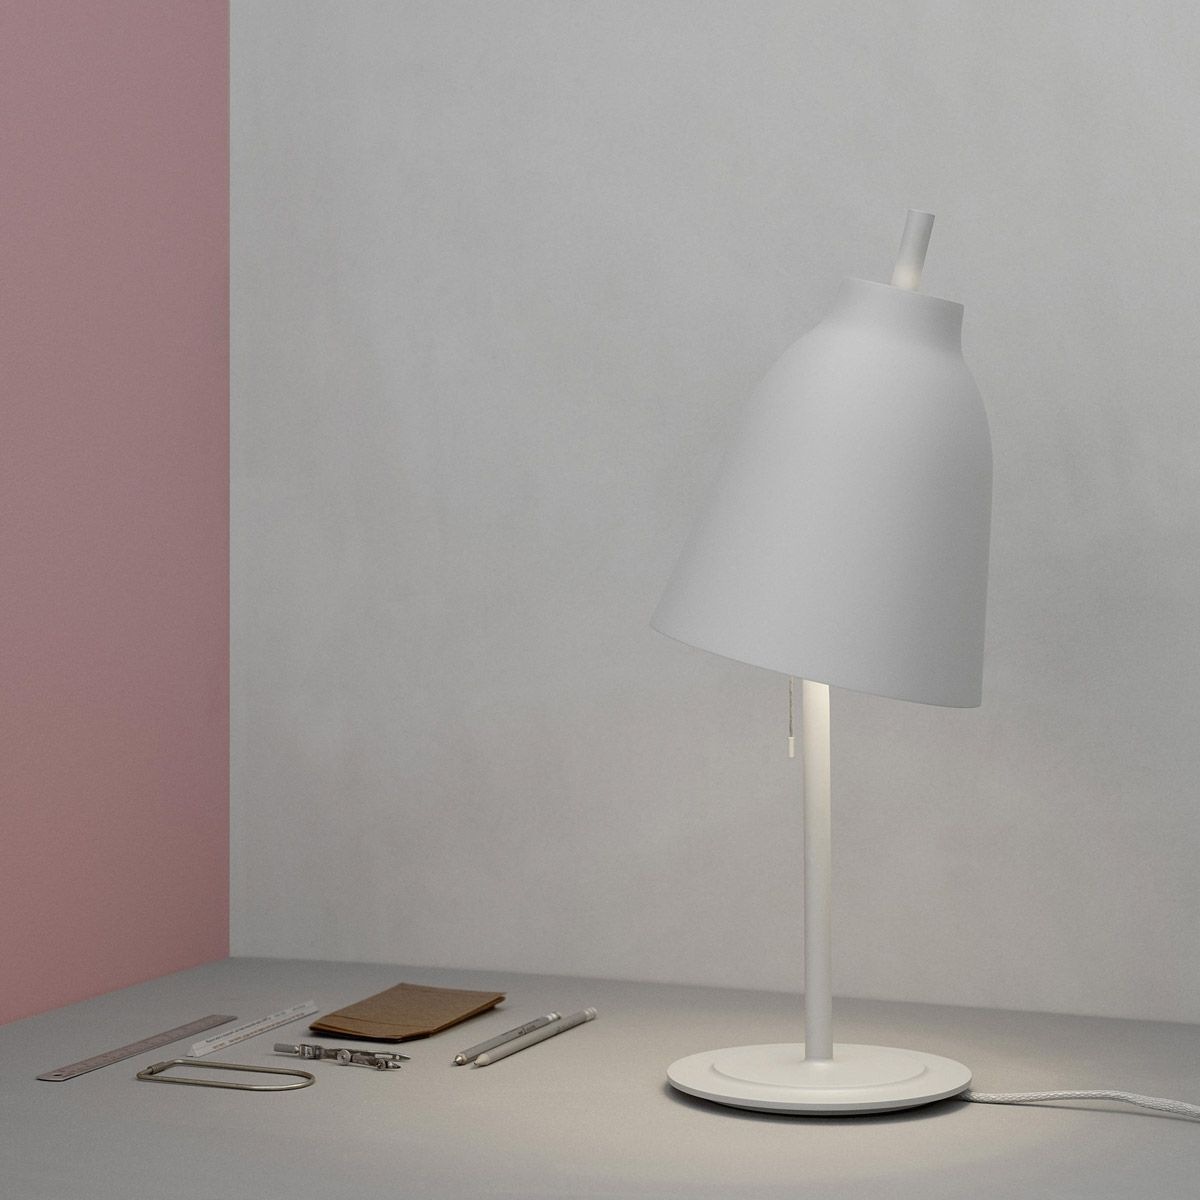 Caravaggio Table Matt lamp by Cecilie Manz edited by Lightyears